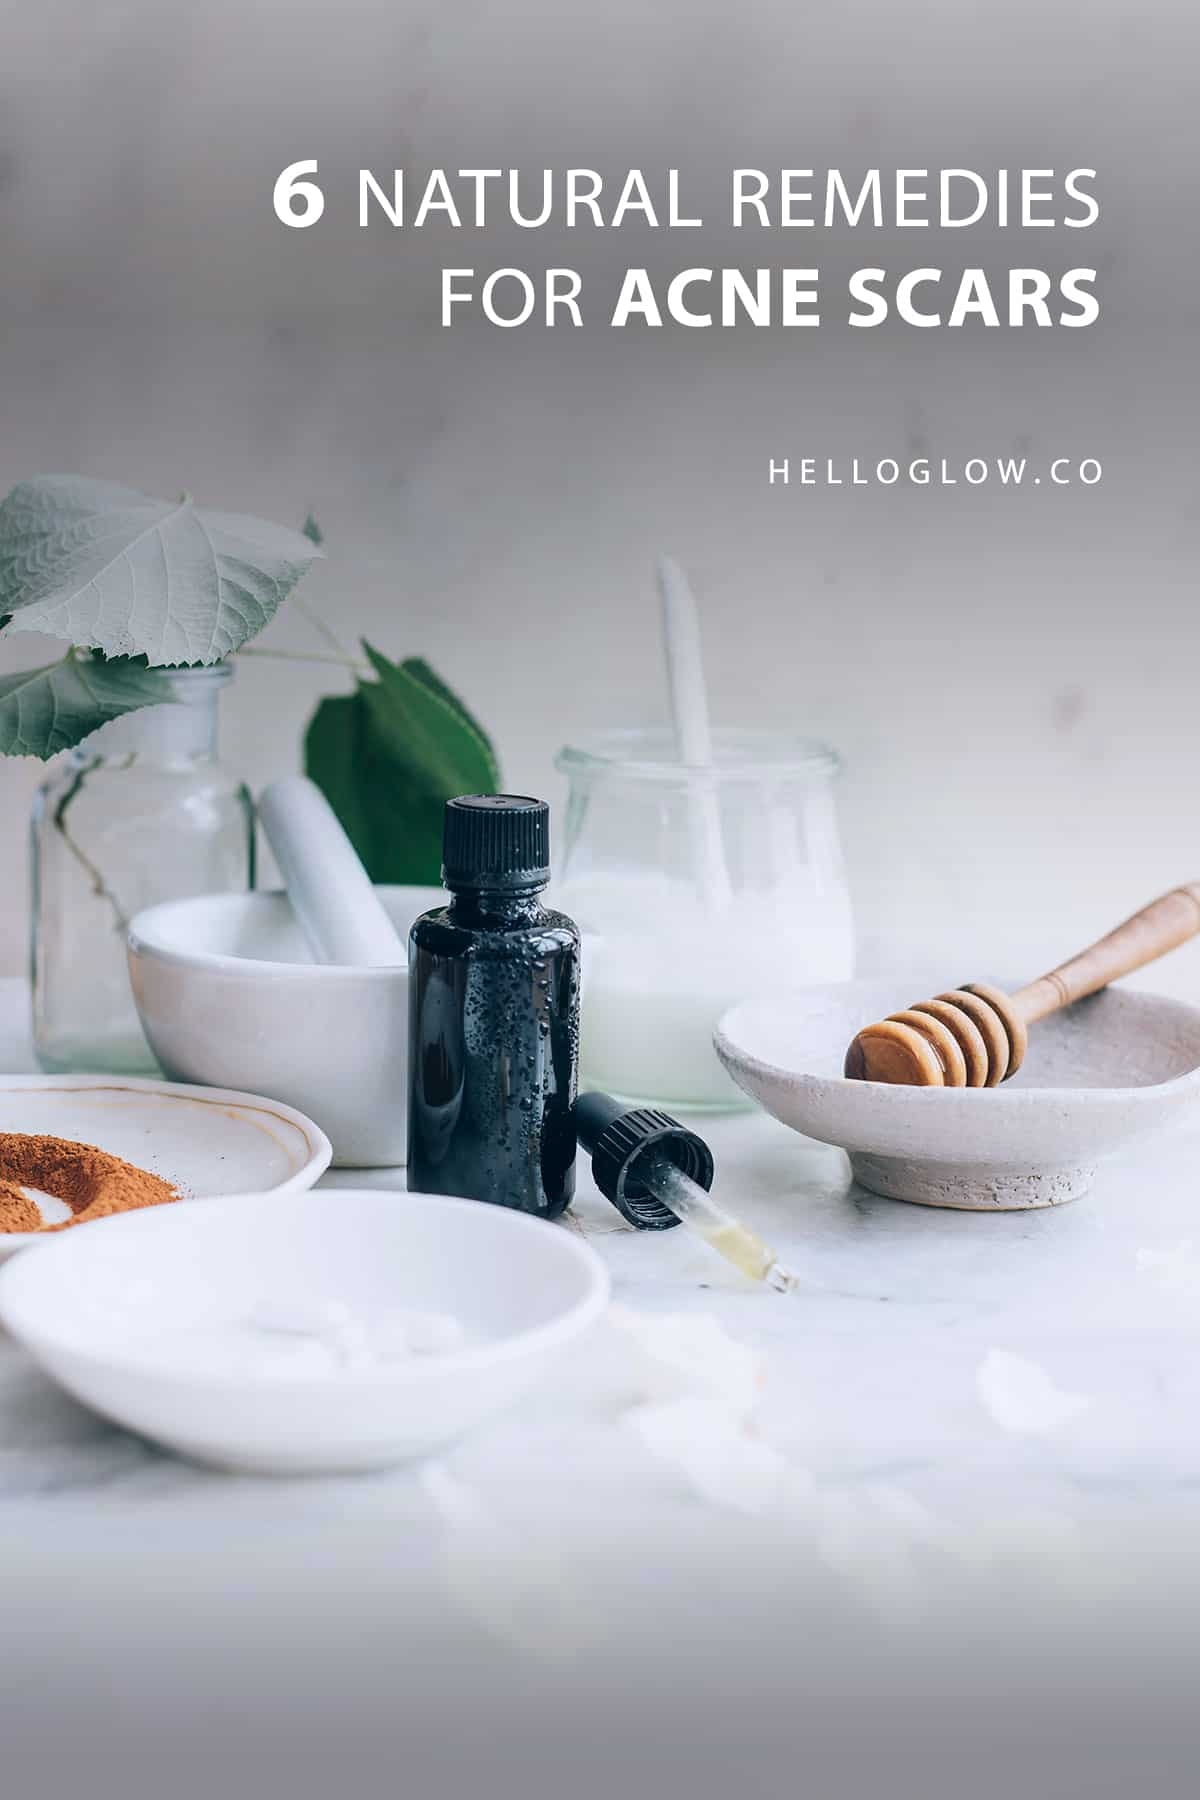 6 Natural Remedies for Acne Scars